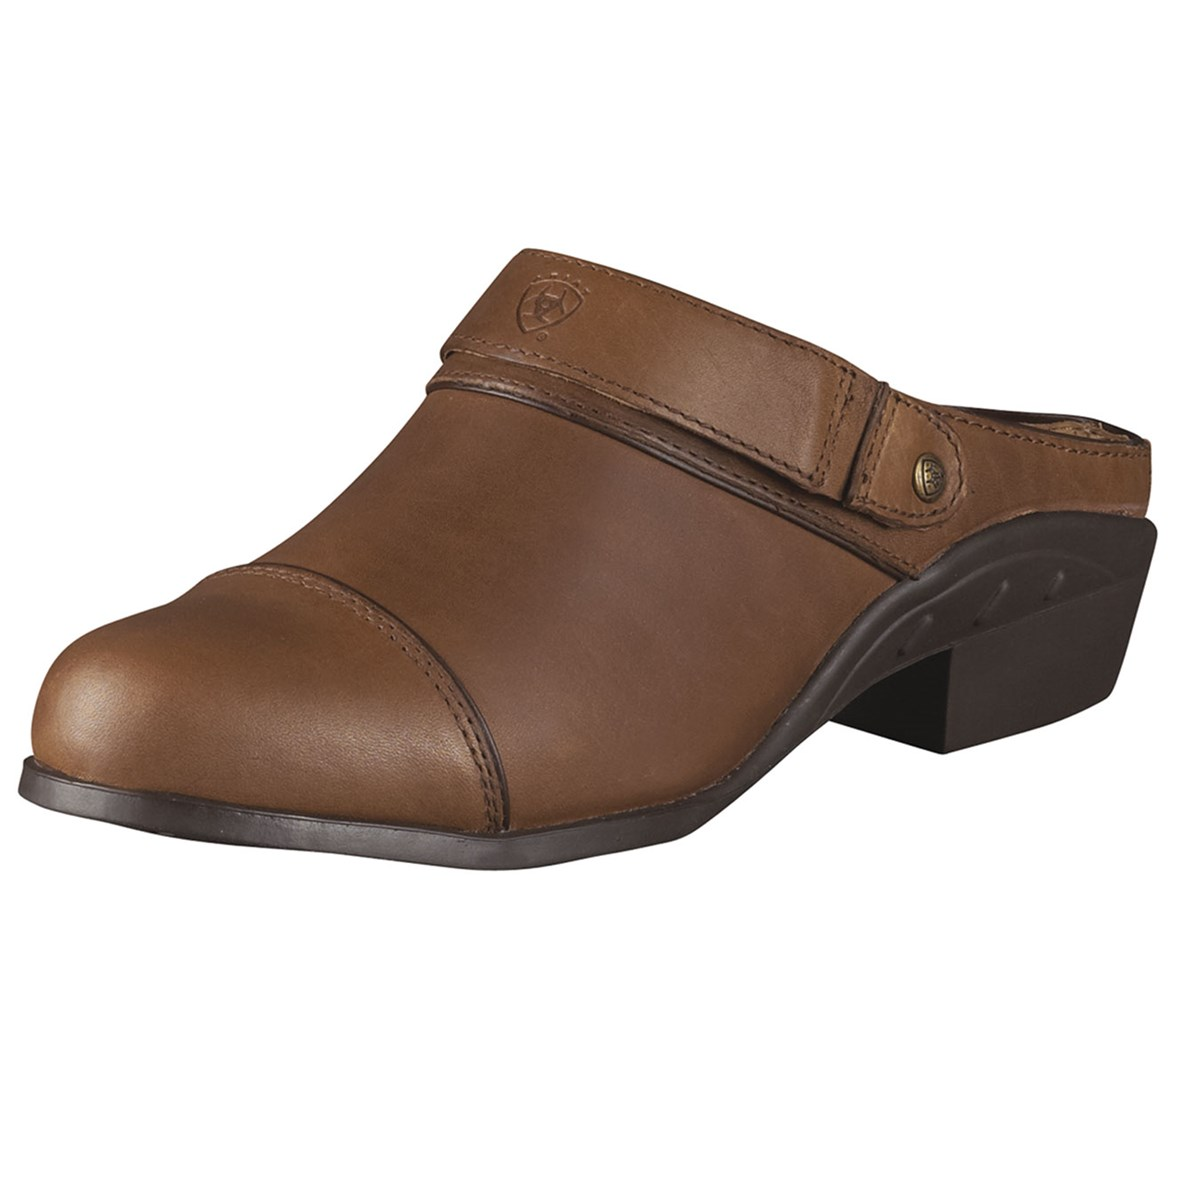 8c6e6f799ff Ariat Sport Mule Womens Slip-On - Timber - Redpost Equestrian